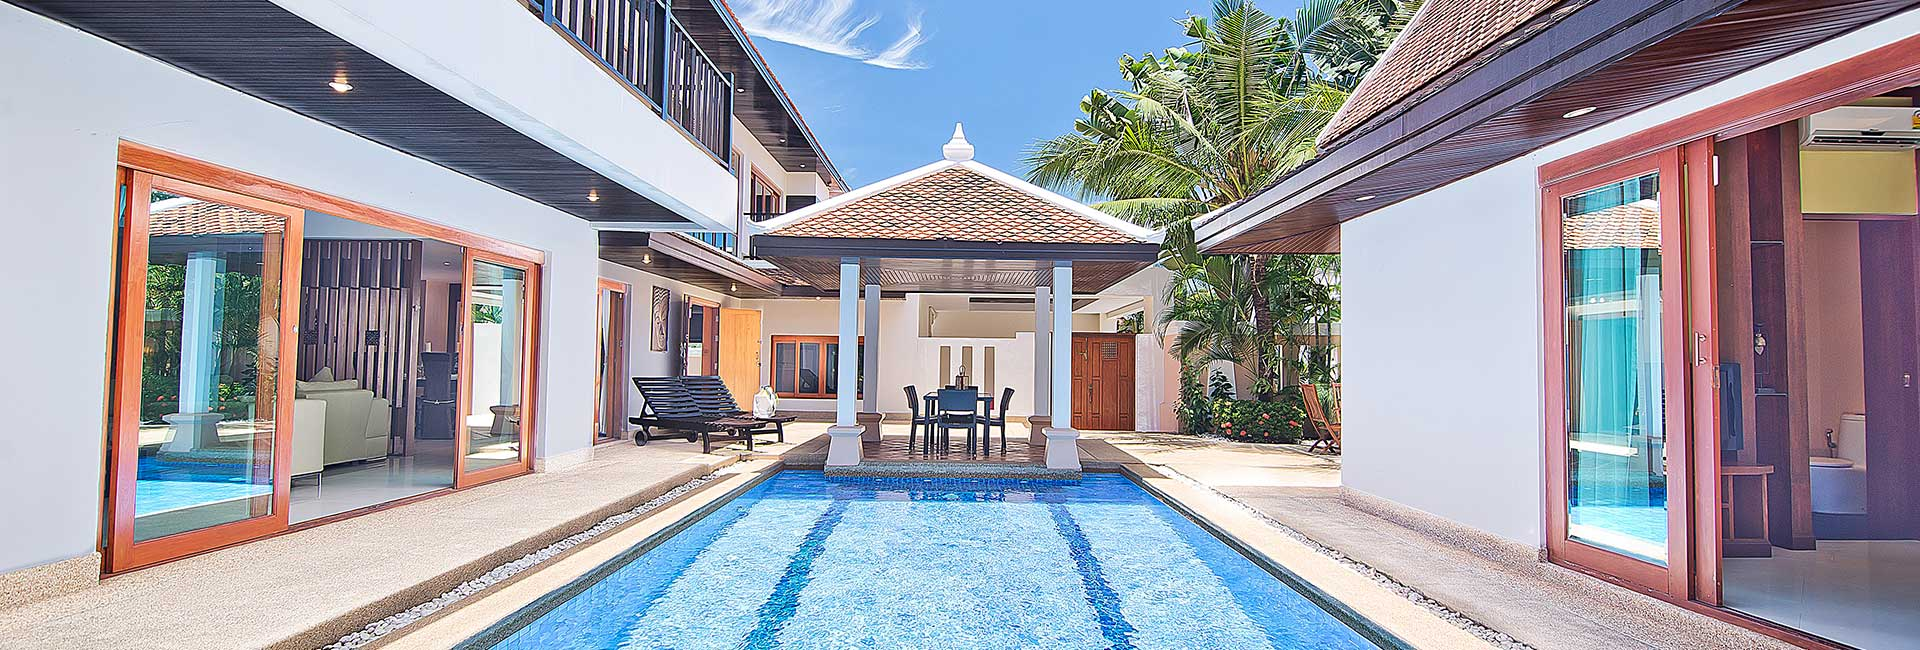 Pool Kaufen Thailand Tropicana Pool Villa Luxurious Tropical Houses And Villas With